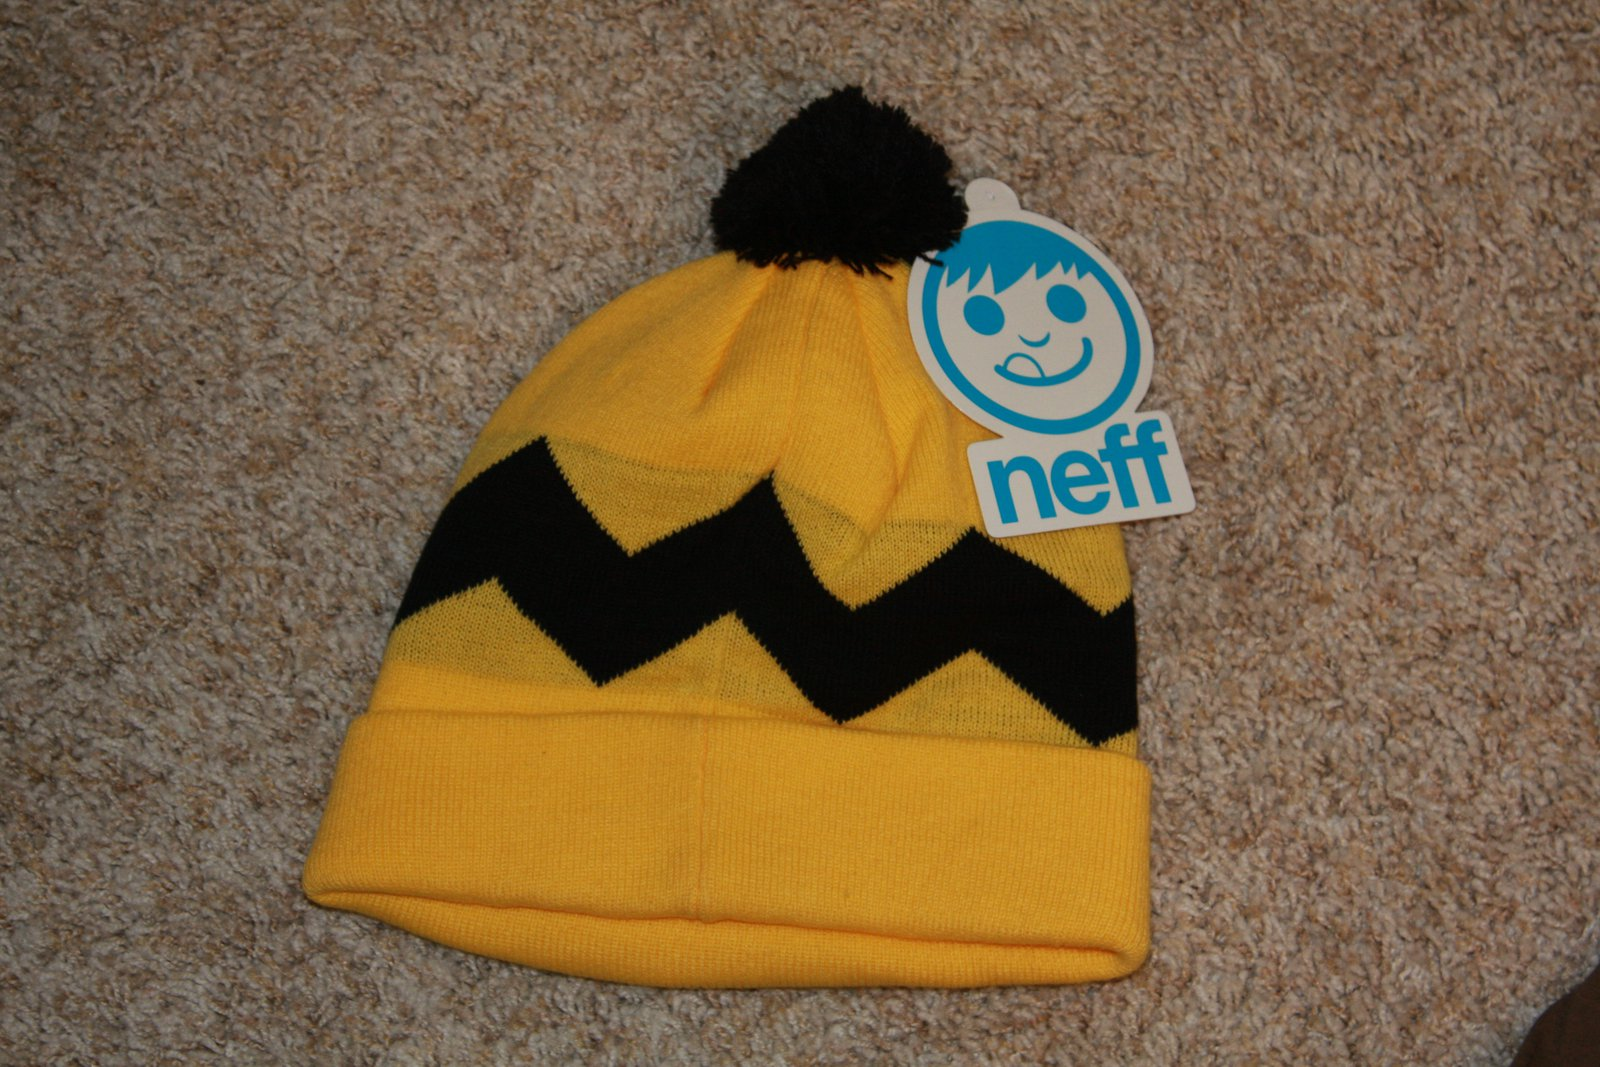 1cdd03bb729 Neff Charlie Brown beanie - Pictures - Newschoolers.com